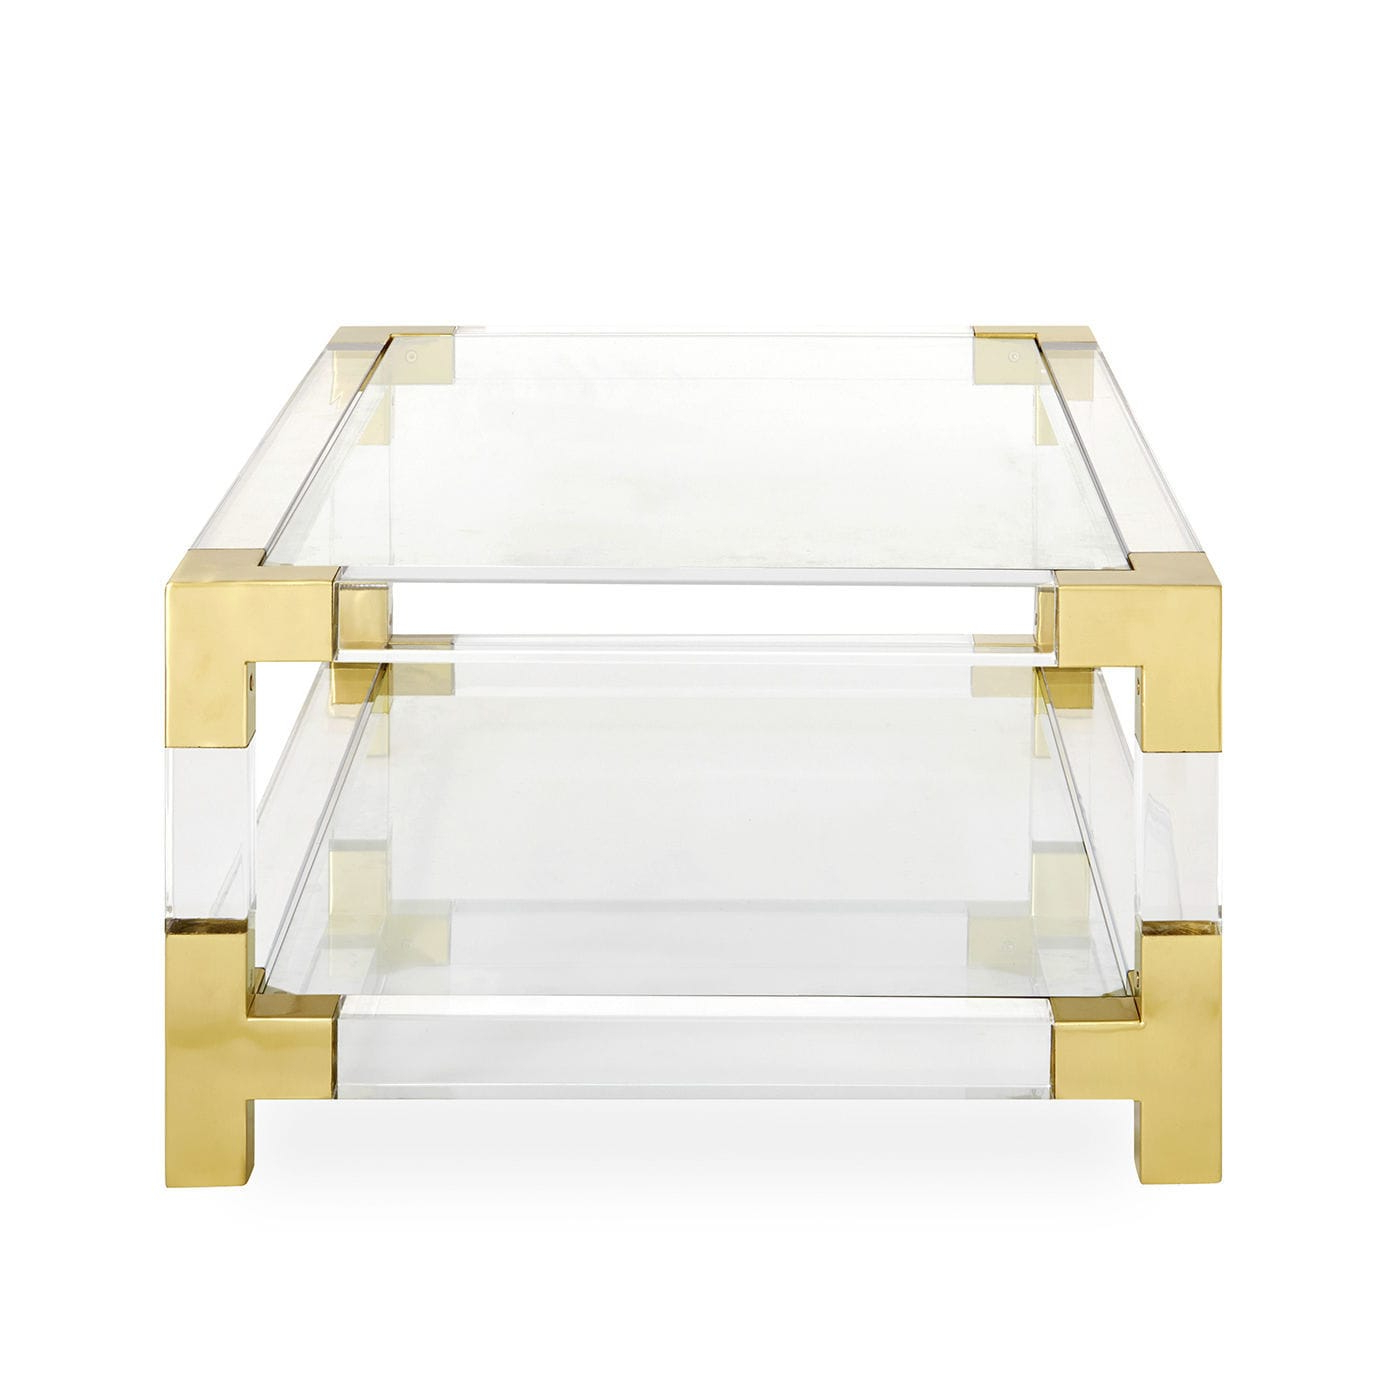 Fashionable Acrylic & Brushed Brass Coffee Tables With Regard To Contemporary Coffee Table / Glass / Brushed Brass / Acrylic (View 7 of 20)